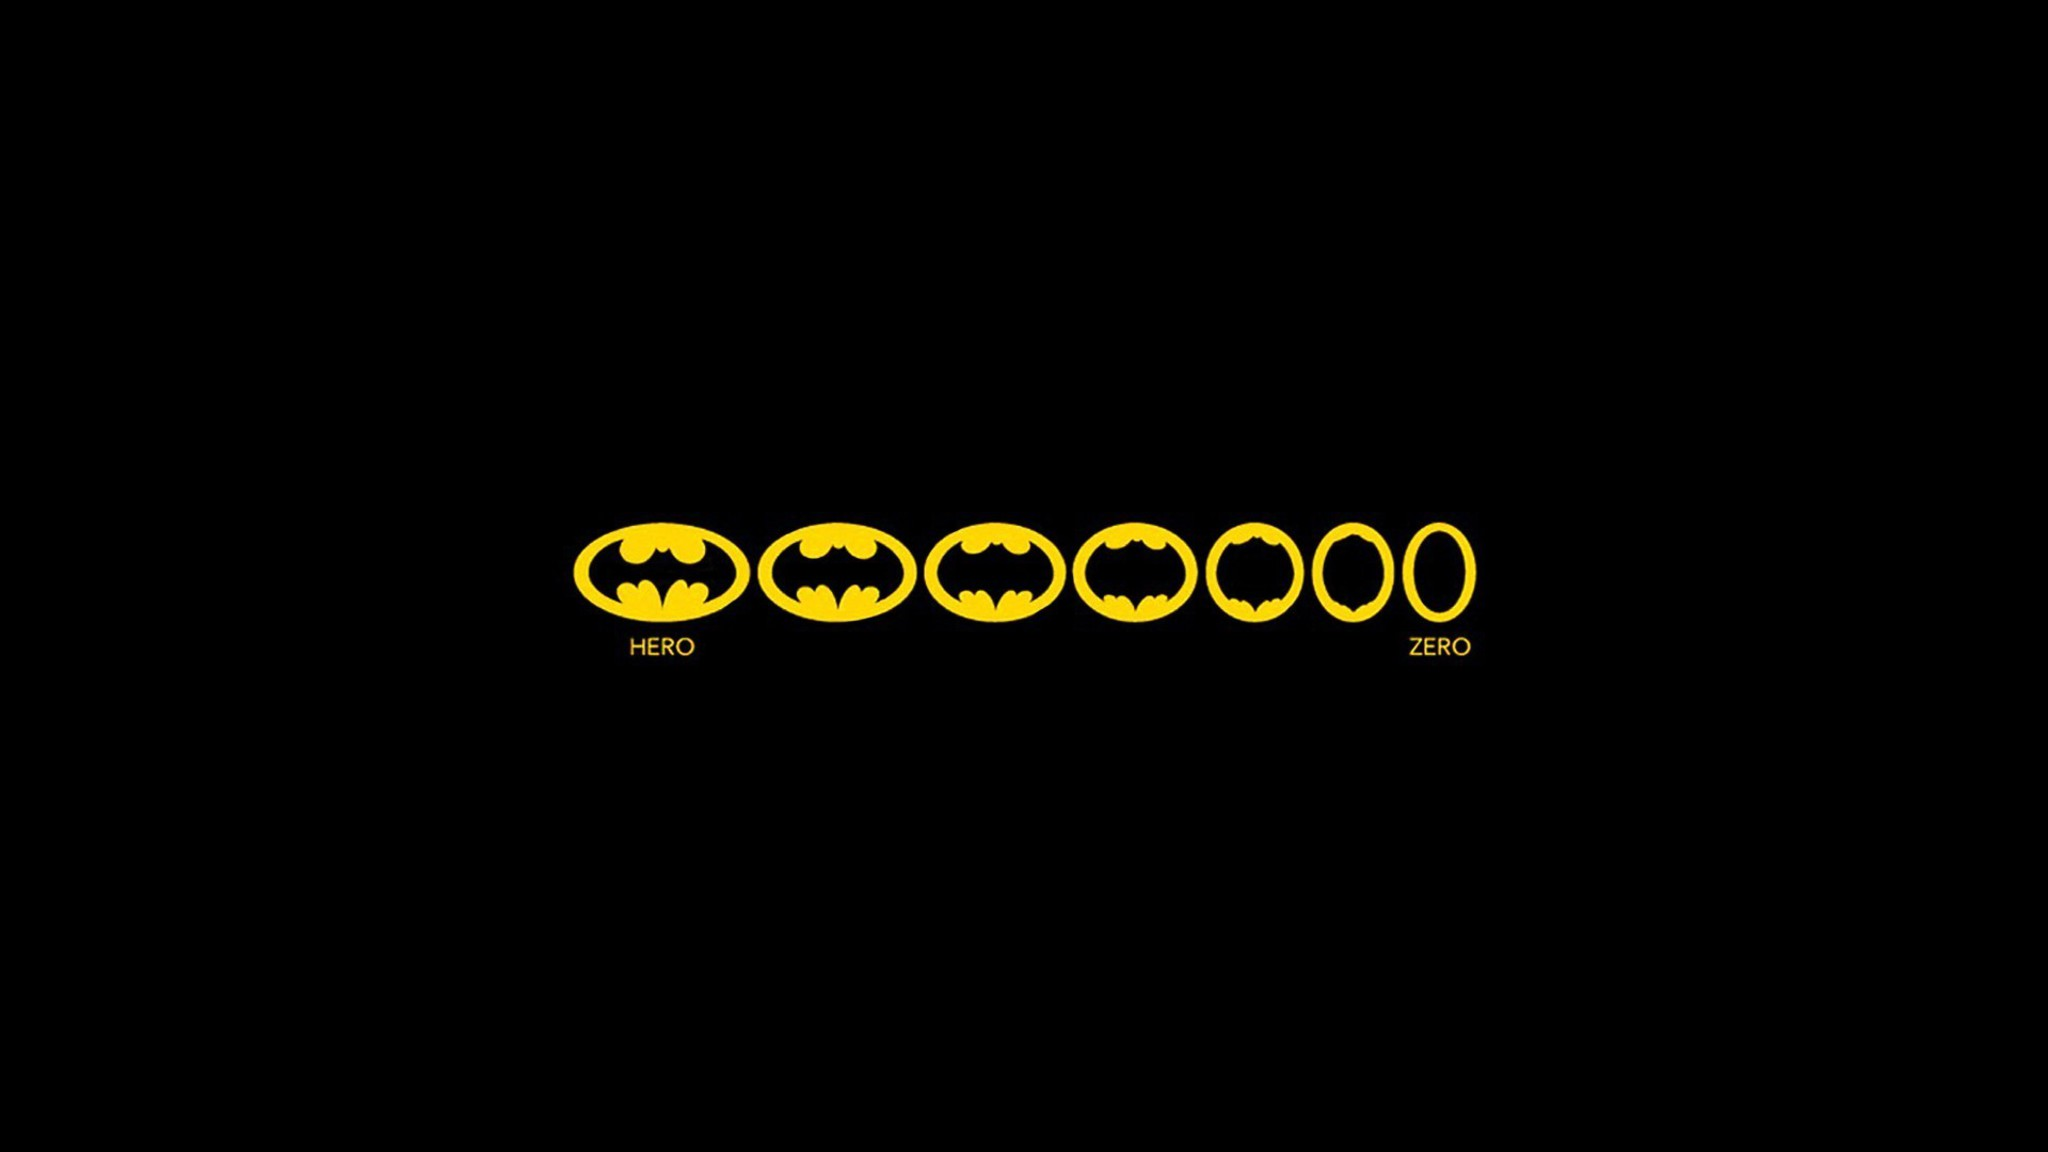 Batman Black Background Funny Icons Logos Wallpaper Allwallpaper